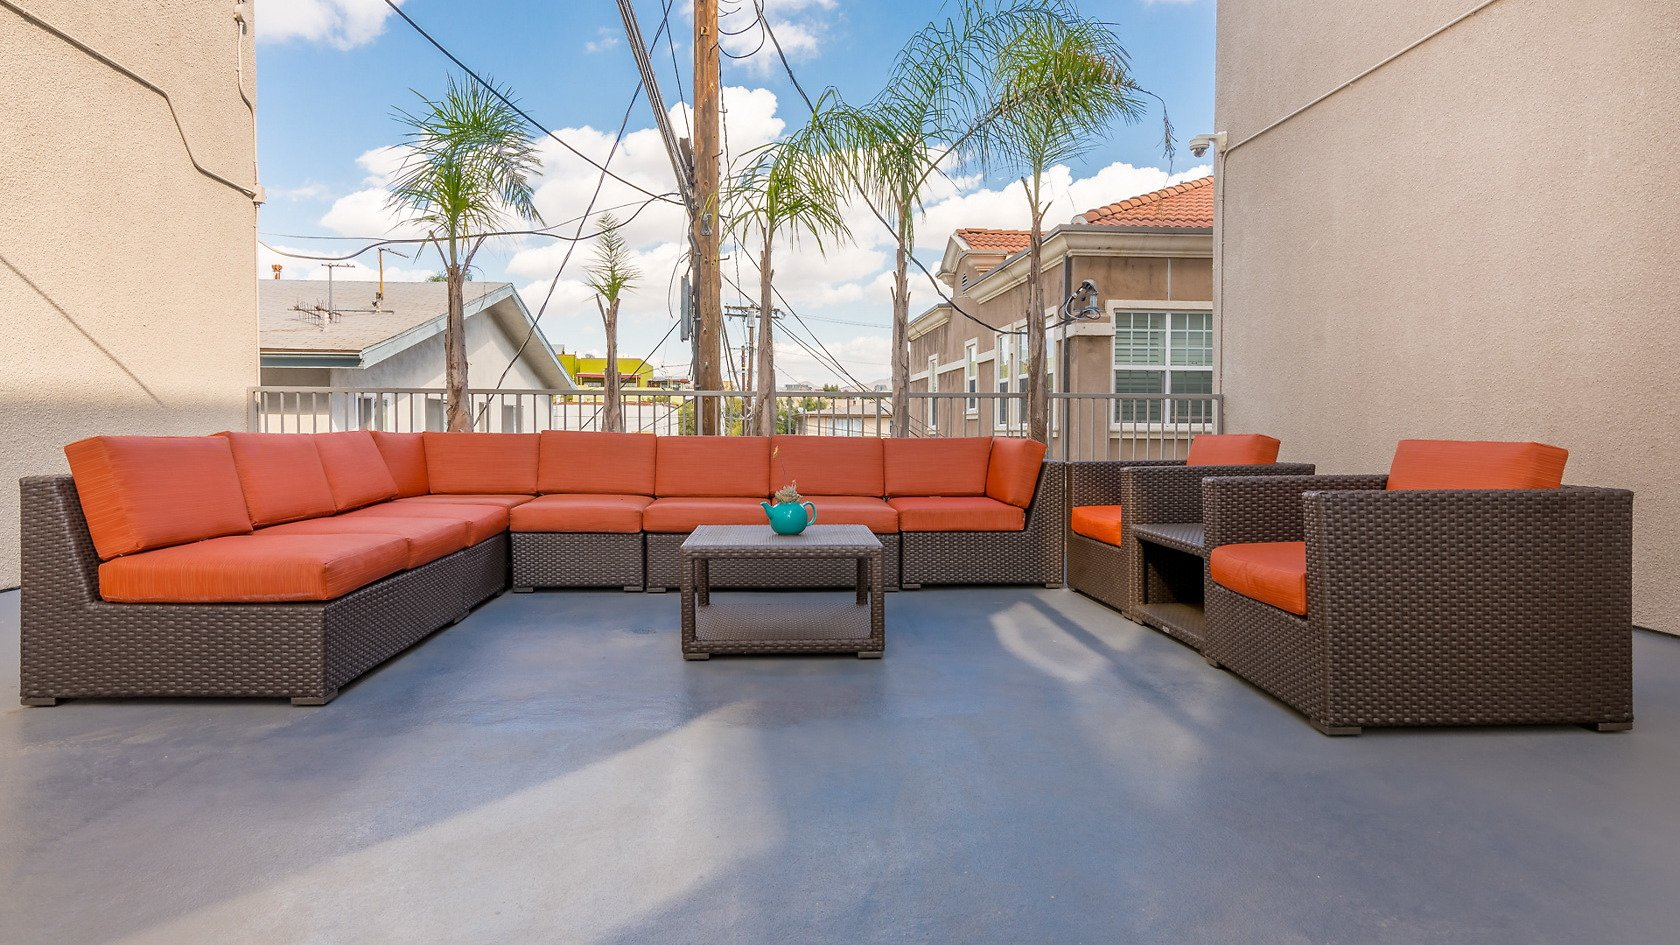 Regency Palm Court Corporate Rental-Sample Image of Los Angeles CA Intern Home